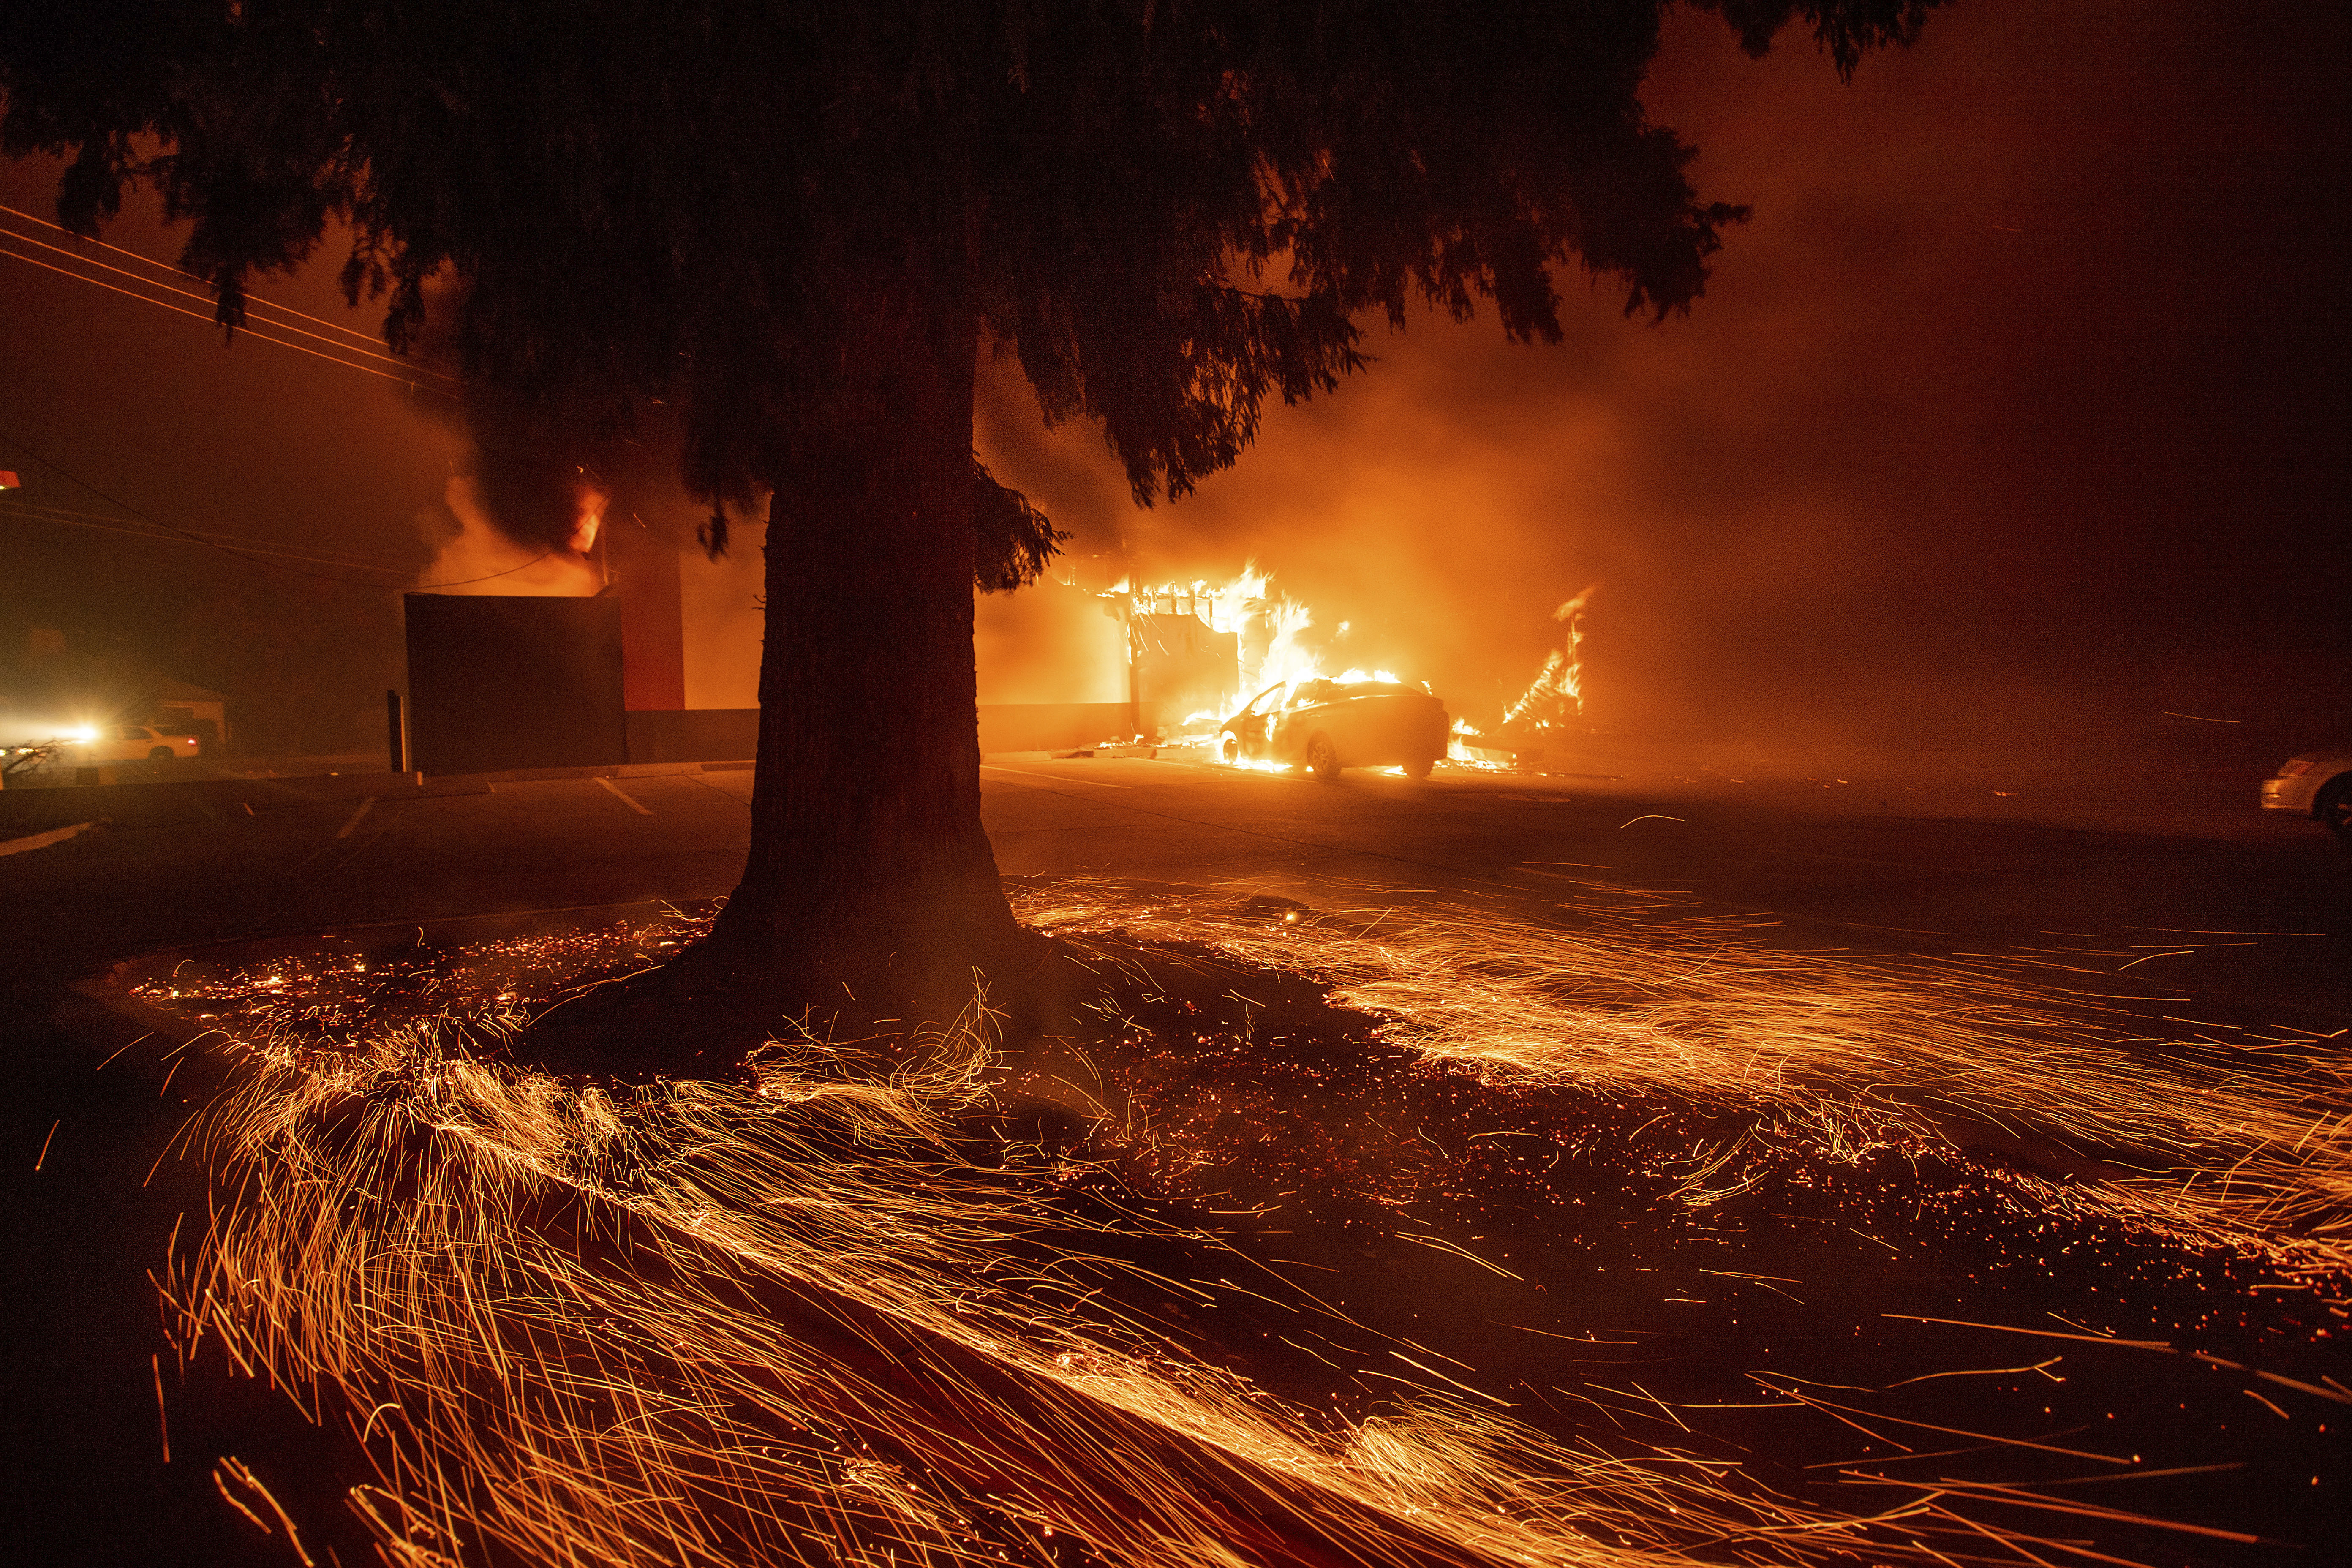 Flames consume a Kentucky Fried Chicken as the Camp Fire tears through Paradise, Calif., on Thursday, Nov. 8, 2018. Tens of thousands of people fled a fast-moving wildfire Thursday in Northern California, some clutching babies and pets as they abandoned vehicles and struck out on foot ahead of the flames that forced the evacuation of an entire town and destroyed hundreds of structures.